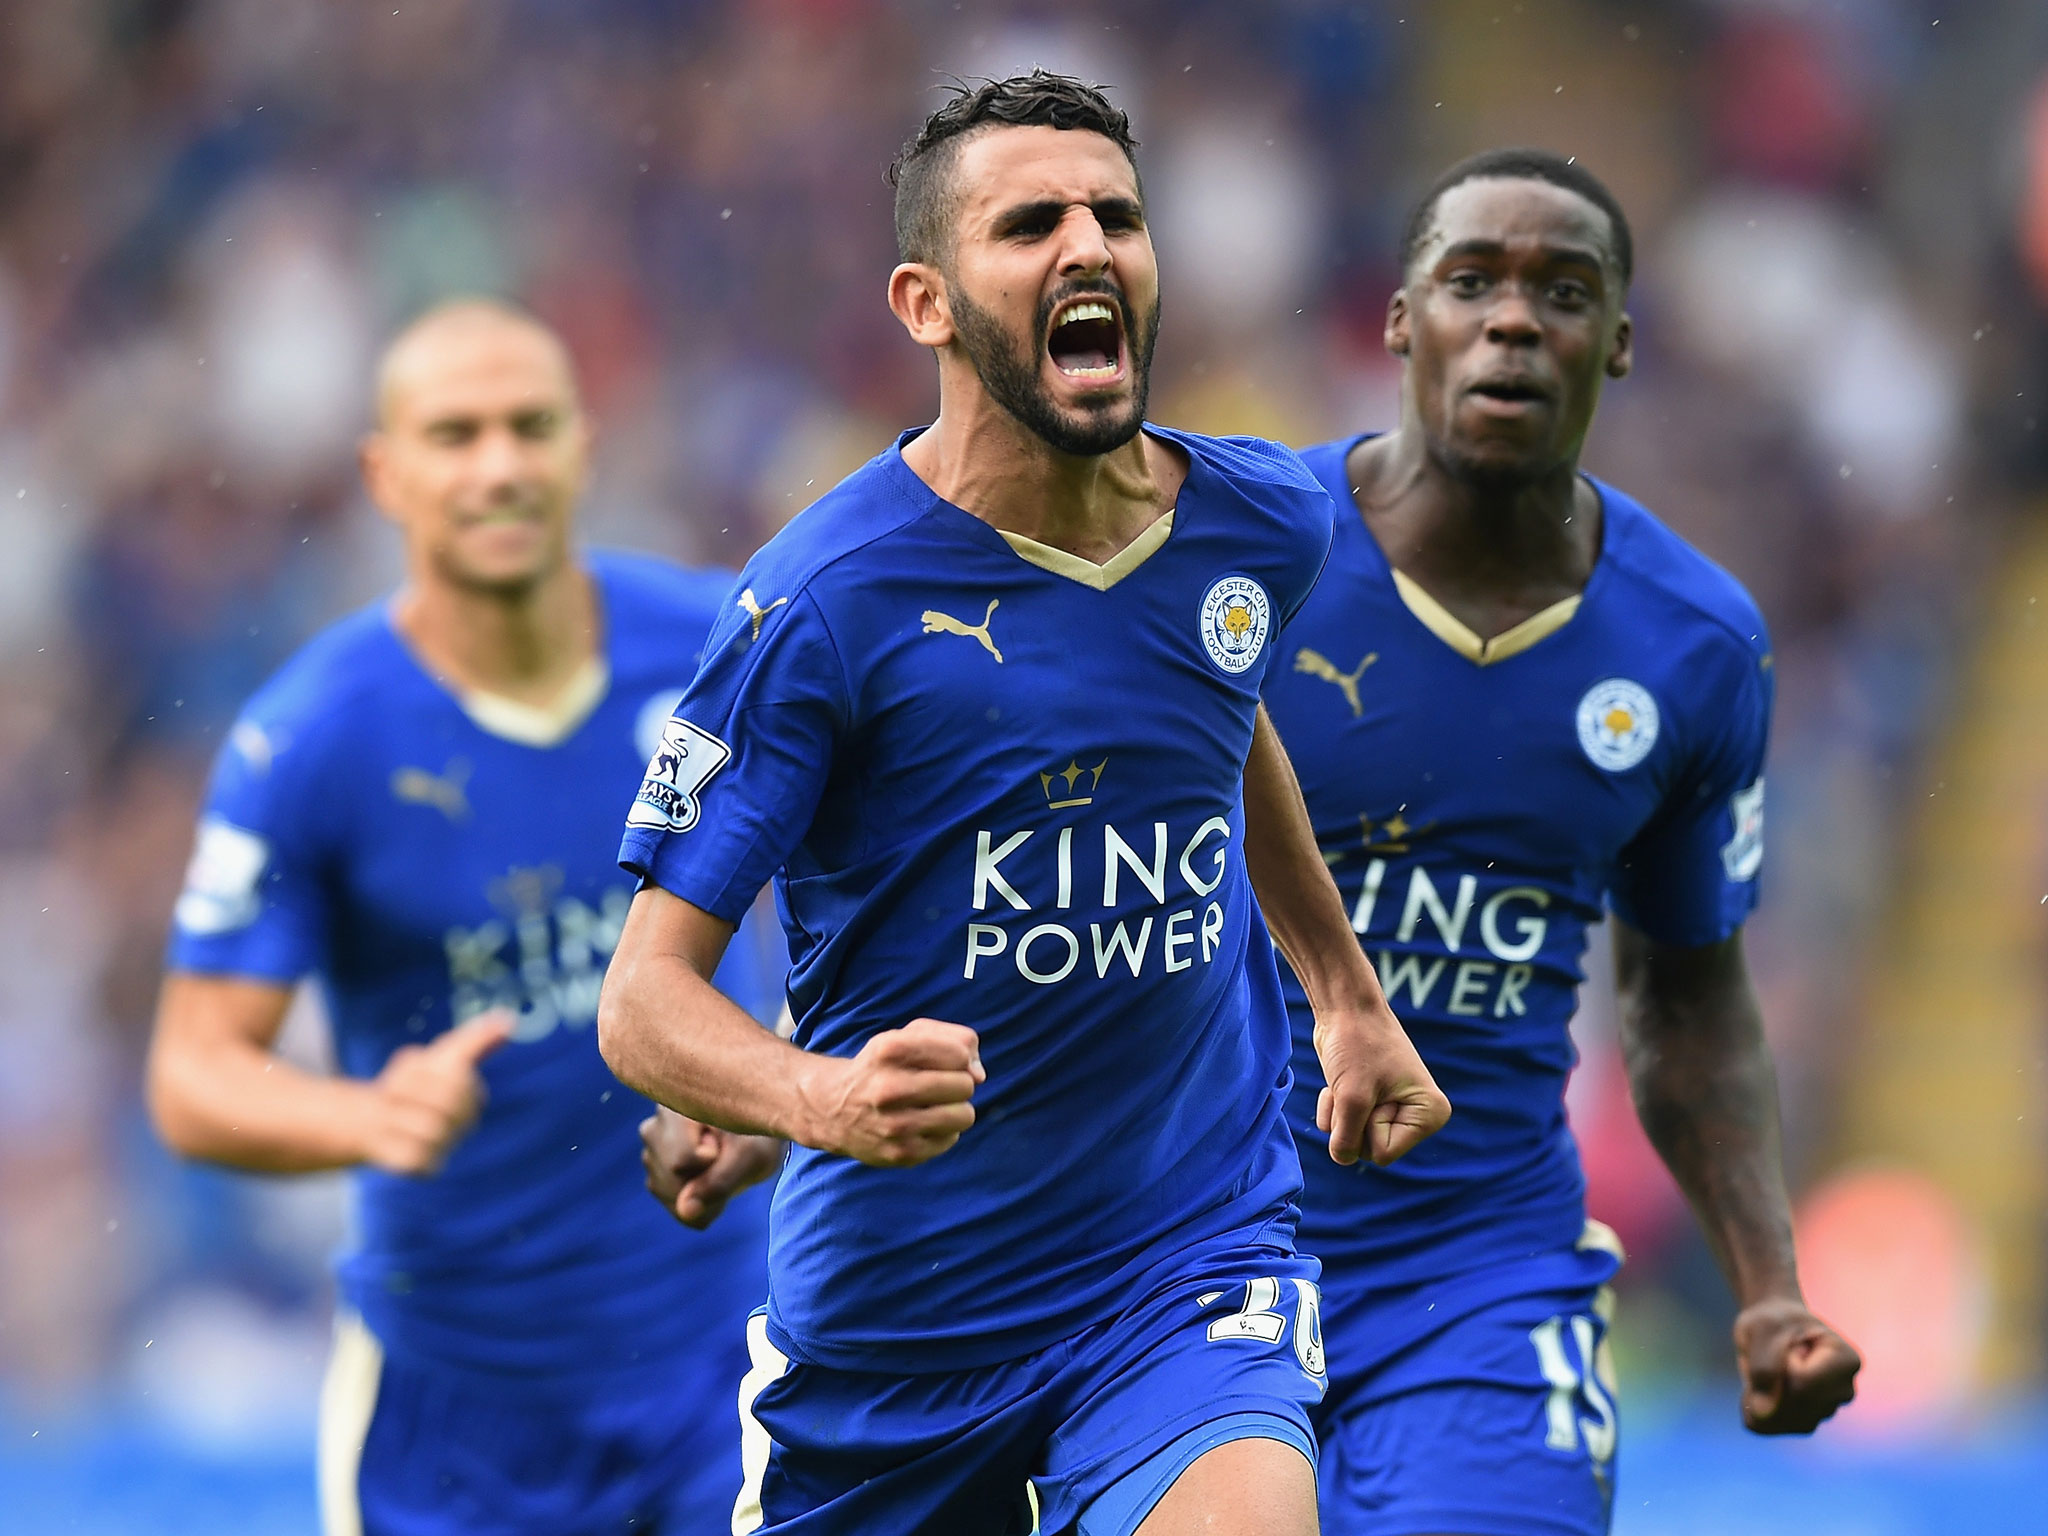 Jose Mourinho wants to bring Riyad Mahrez to Manchester United